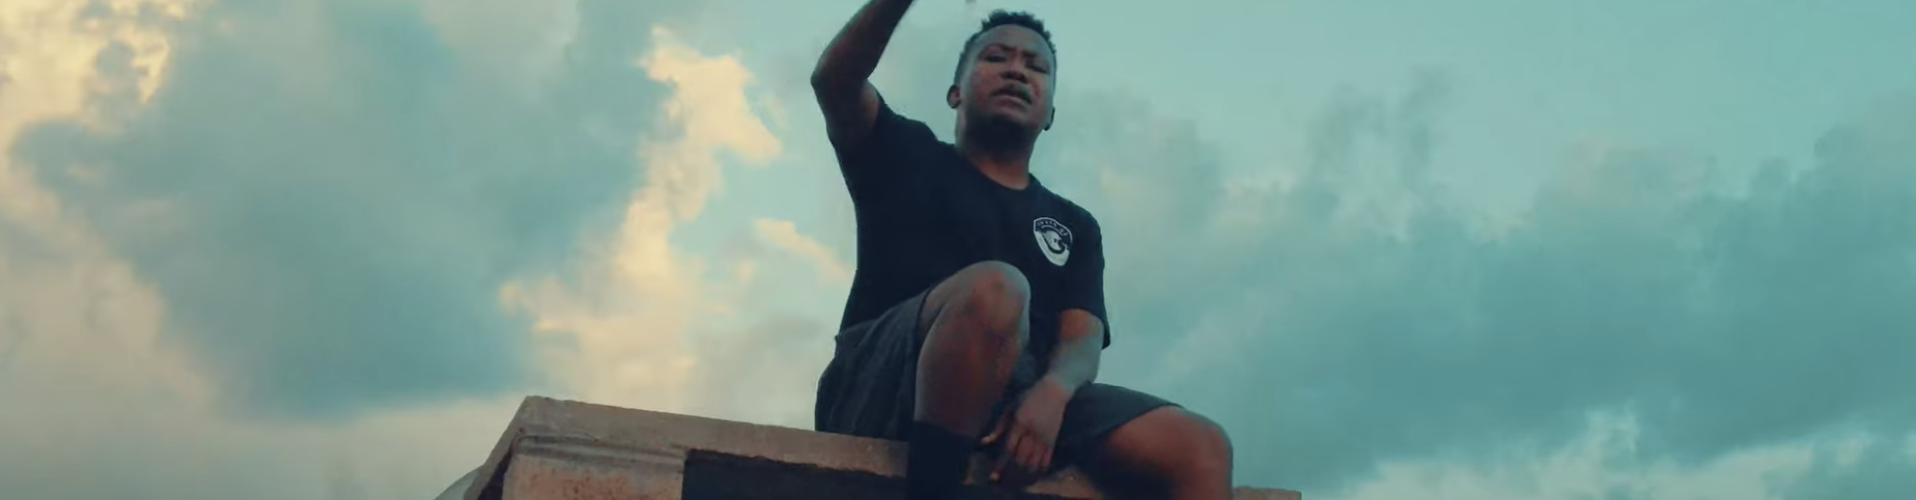 6eorge Staggz – Ralph Williams III (Official Music Video)